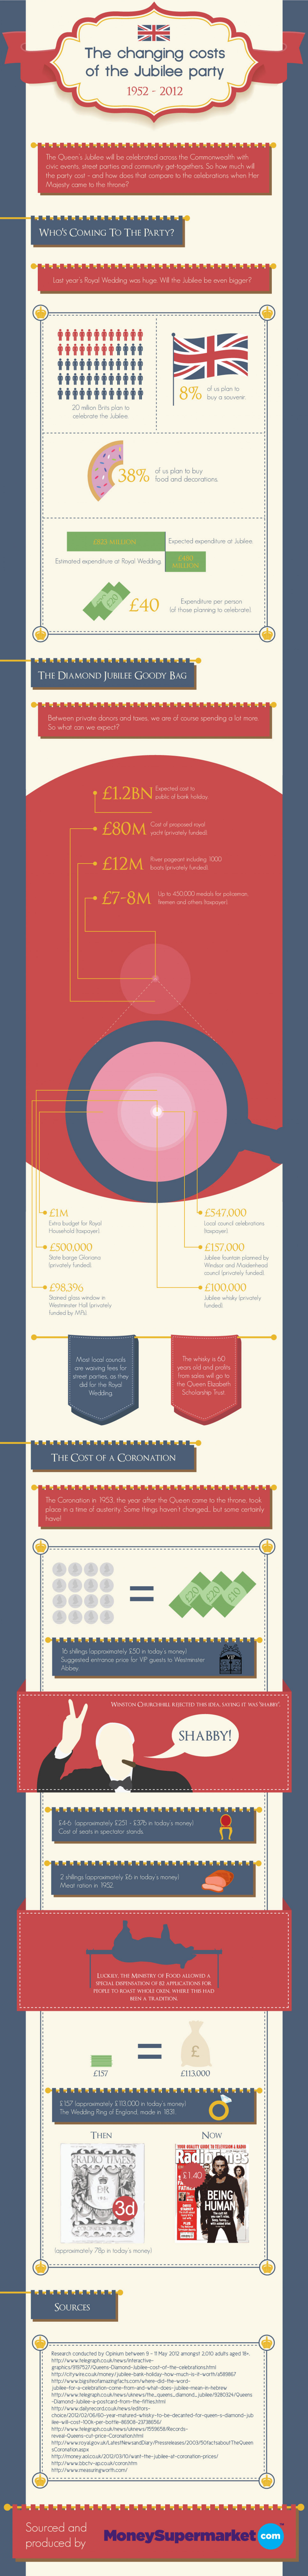 The Changing Costs of The Jubilee Infographic